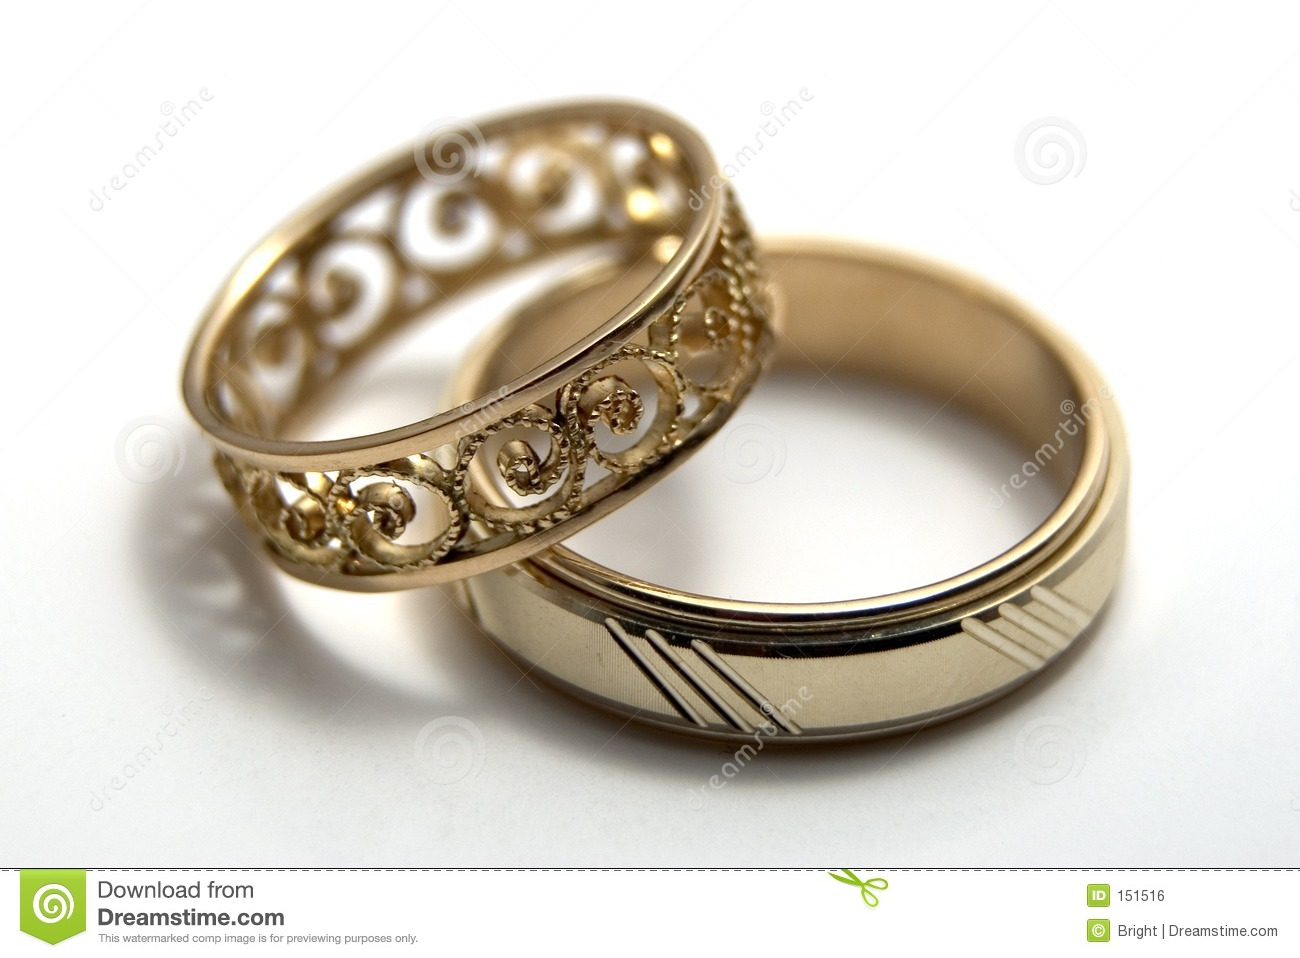 wedding rings royalty free stock image - Pics Of Wedding Rings